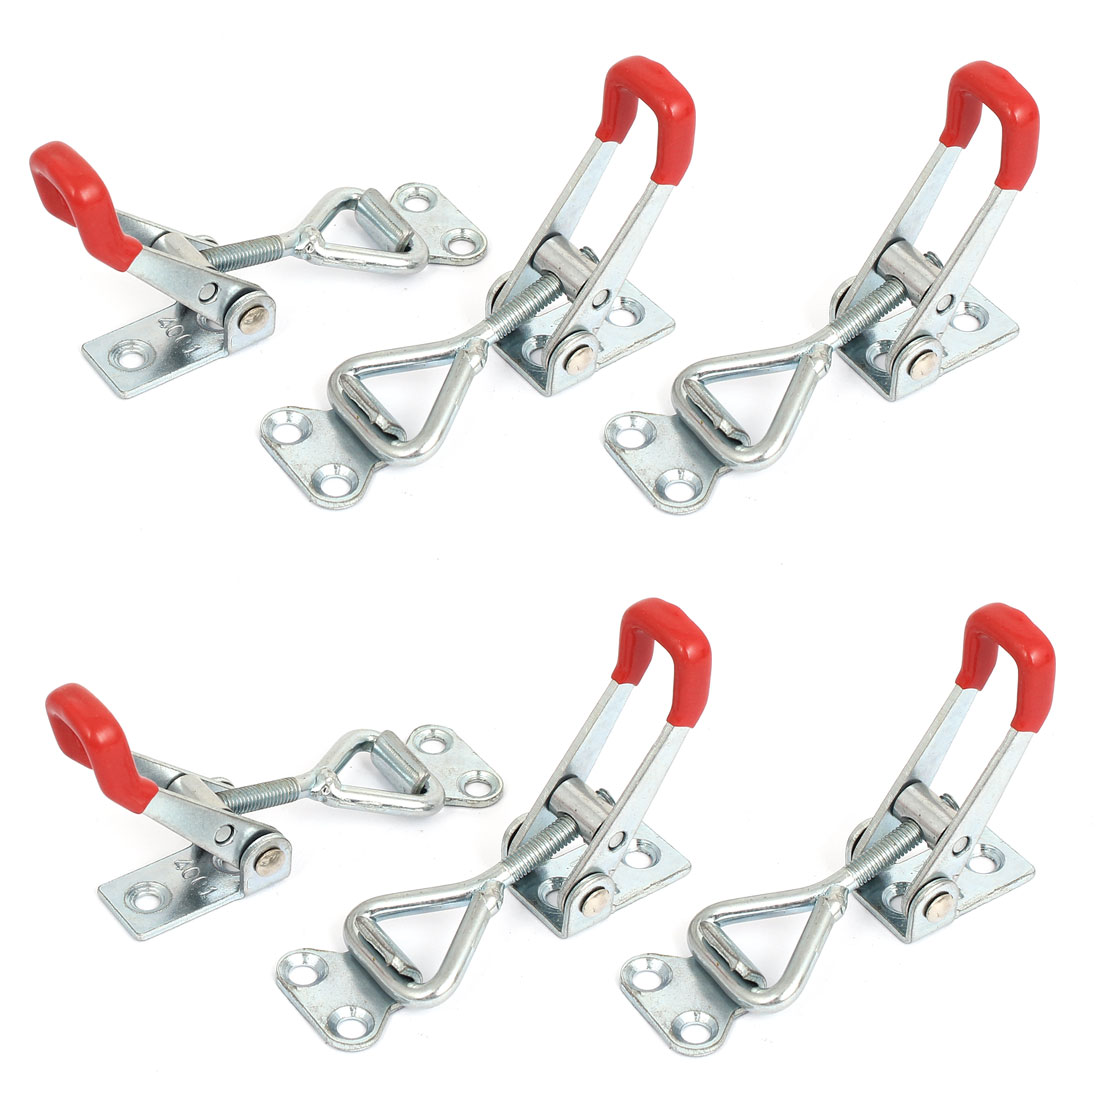 6pcs 4001 100Kg 220 Lbs Holding Capacity Metal Latch Door Button Toggle Clamps